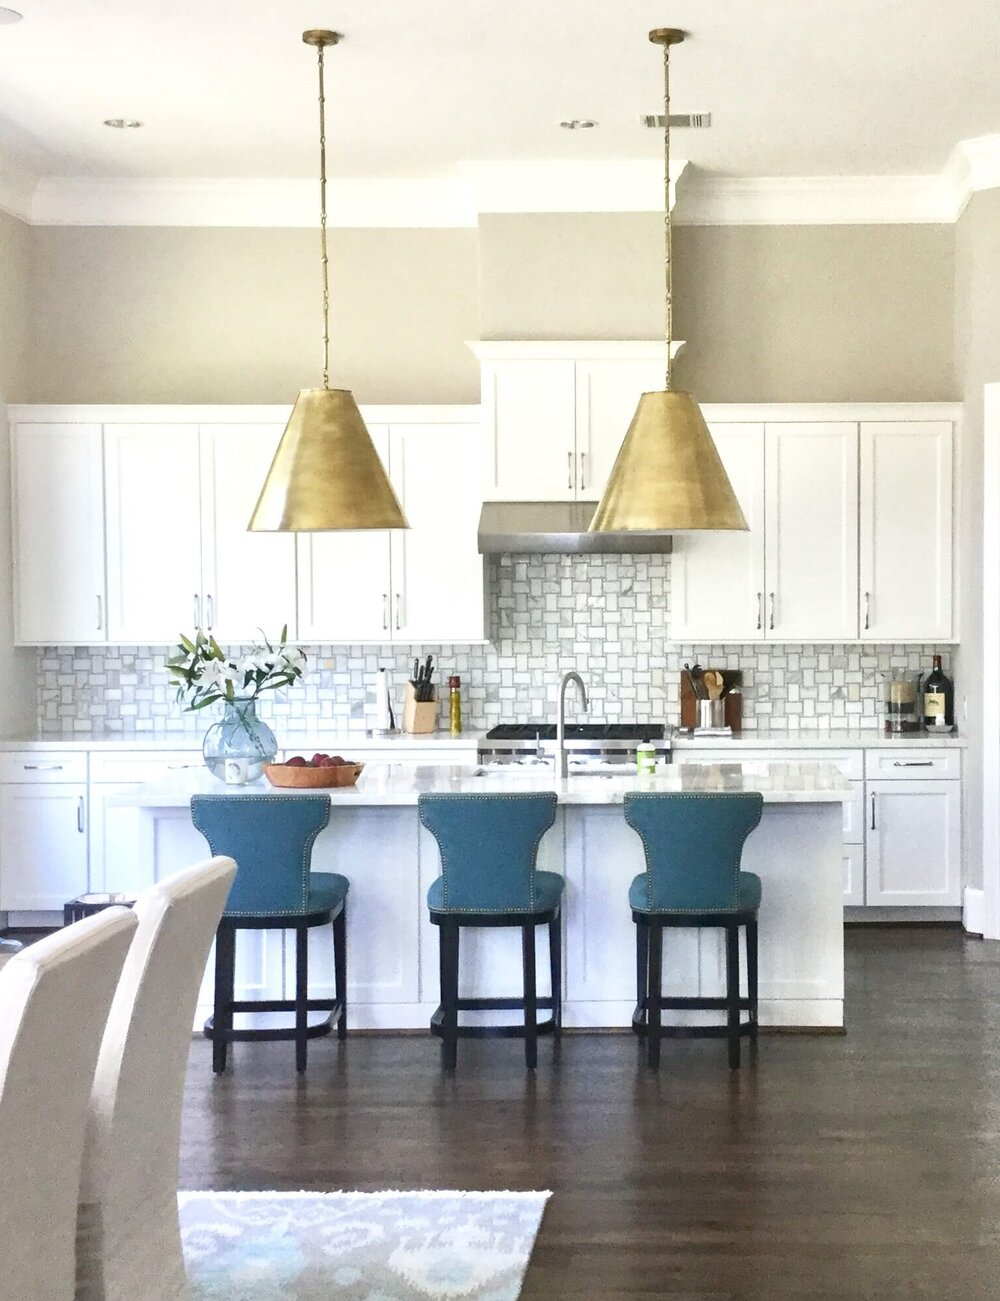 Large brass pendants fill the volume of space in this white kitchen with a high ceiling. Carla Aston, Designer #whitekitchen